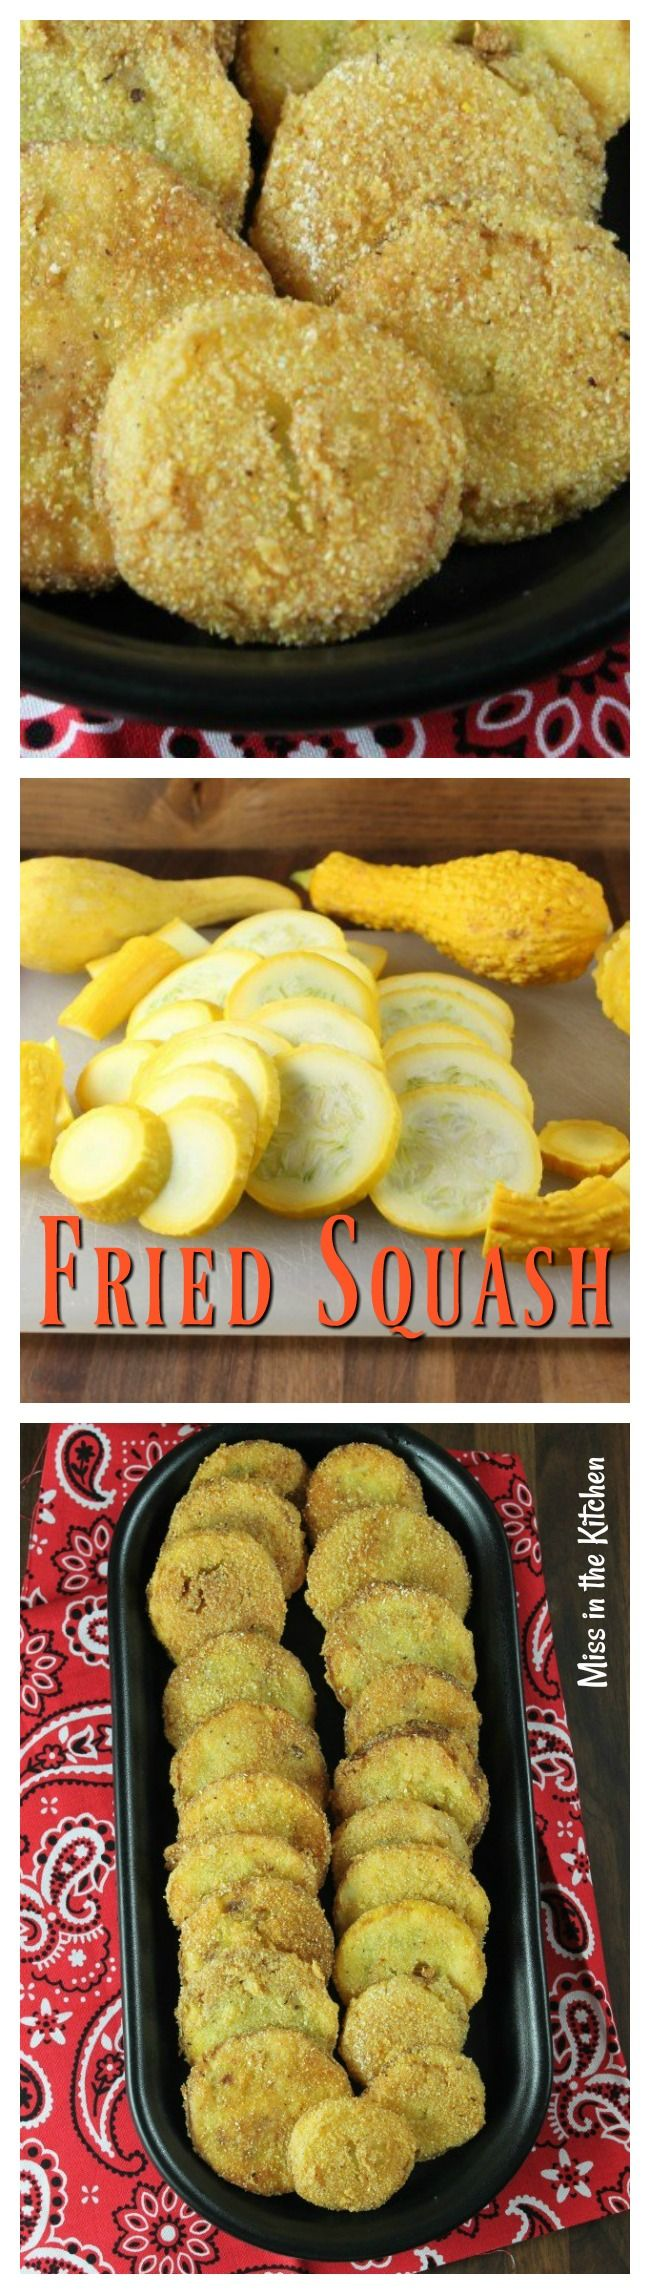 HOW TO MAKE FRIED SQUASH ~ my tried and true recipe for the best fried summer squash! MissintheKitchen.com #squash #fried #deepfried